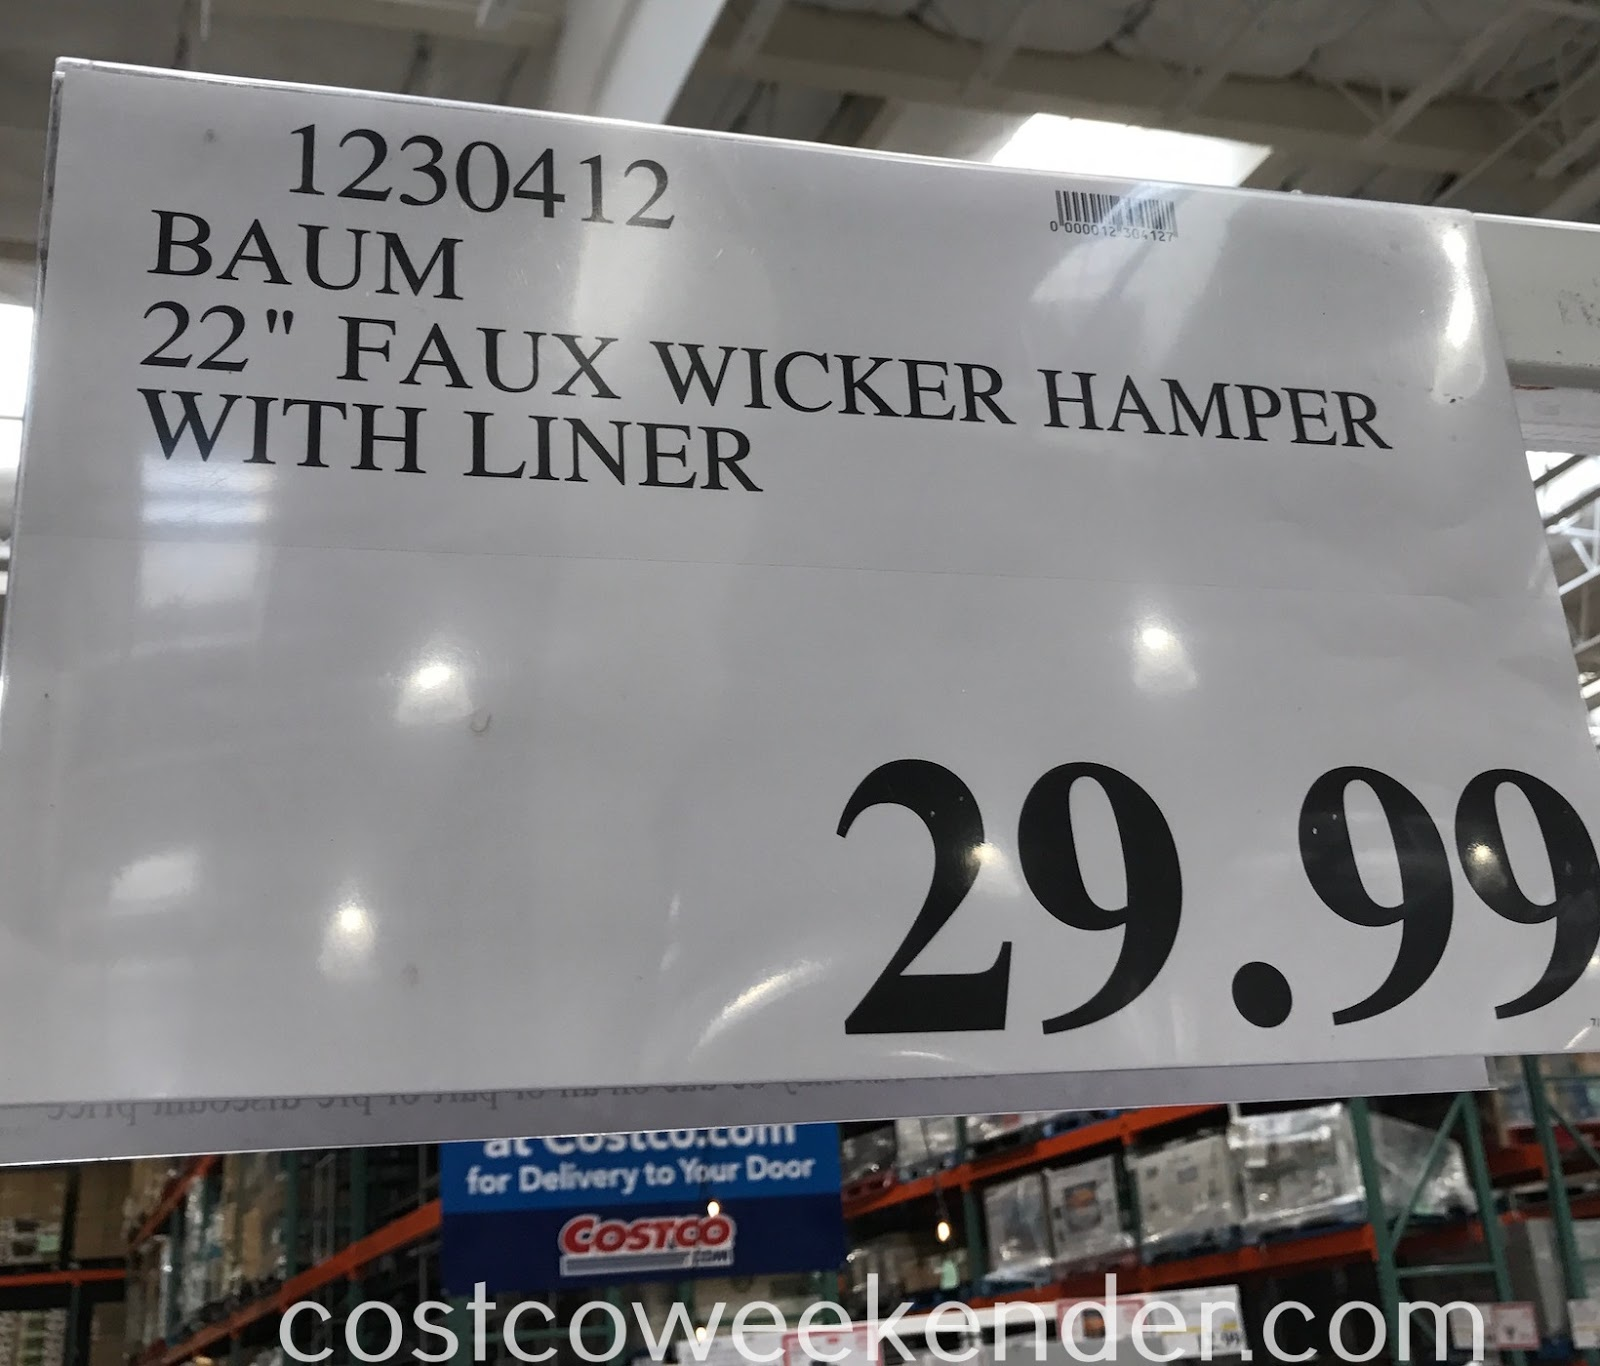 Deal for the Baum Faux Wicker Hamper with Liner at Costco